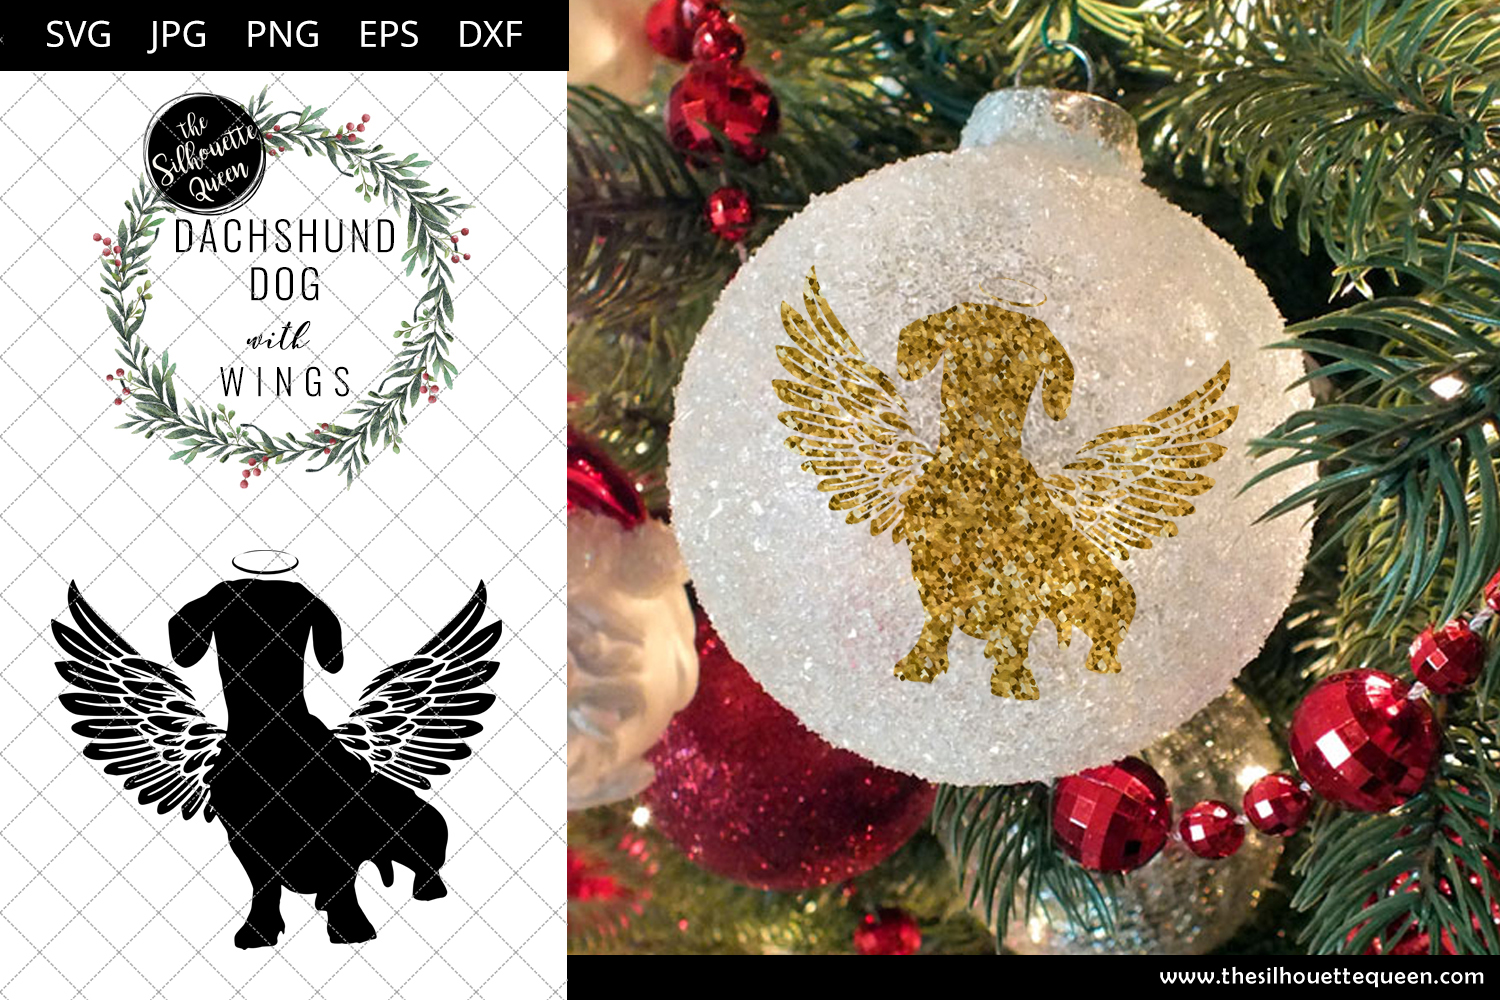 Dachshund Dog 1 With Wings Svg Pet Memorial Rip Angel In Loving Memory Animal Lover Vector For Cricut Silhouette Studio Scan And Cut Files The Silhouette Queen